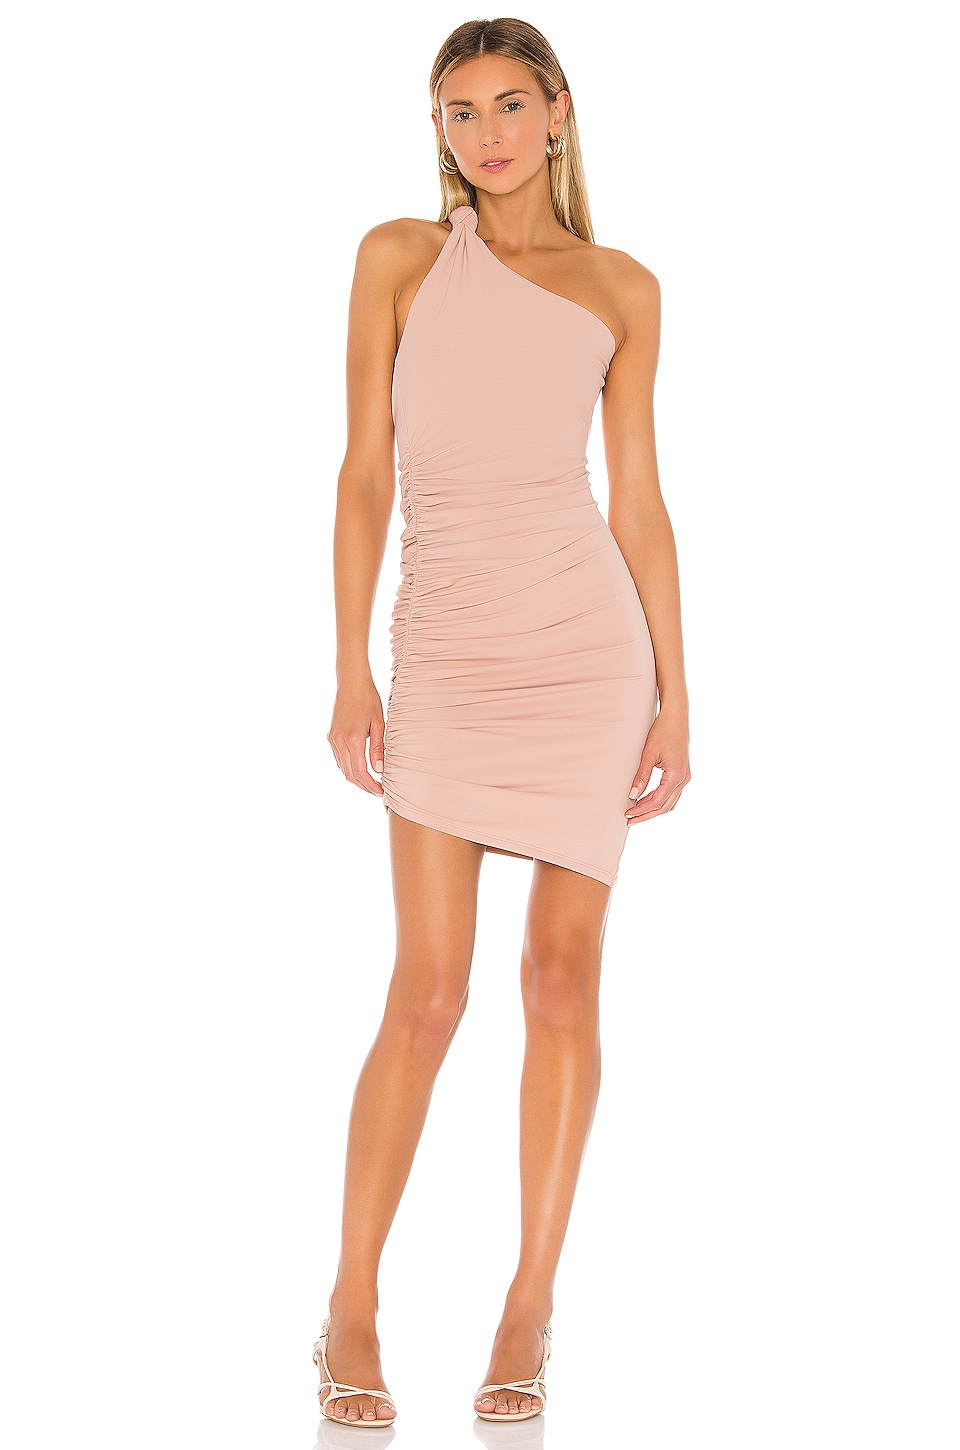 ALIX NYC Celeste Mini Dress in Sand